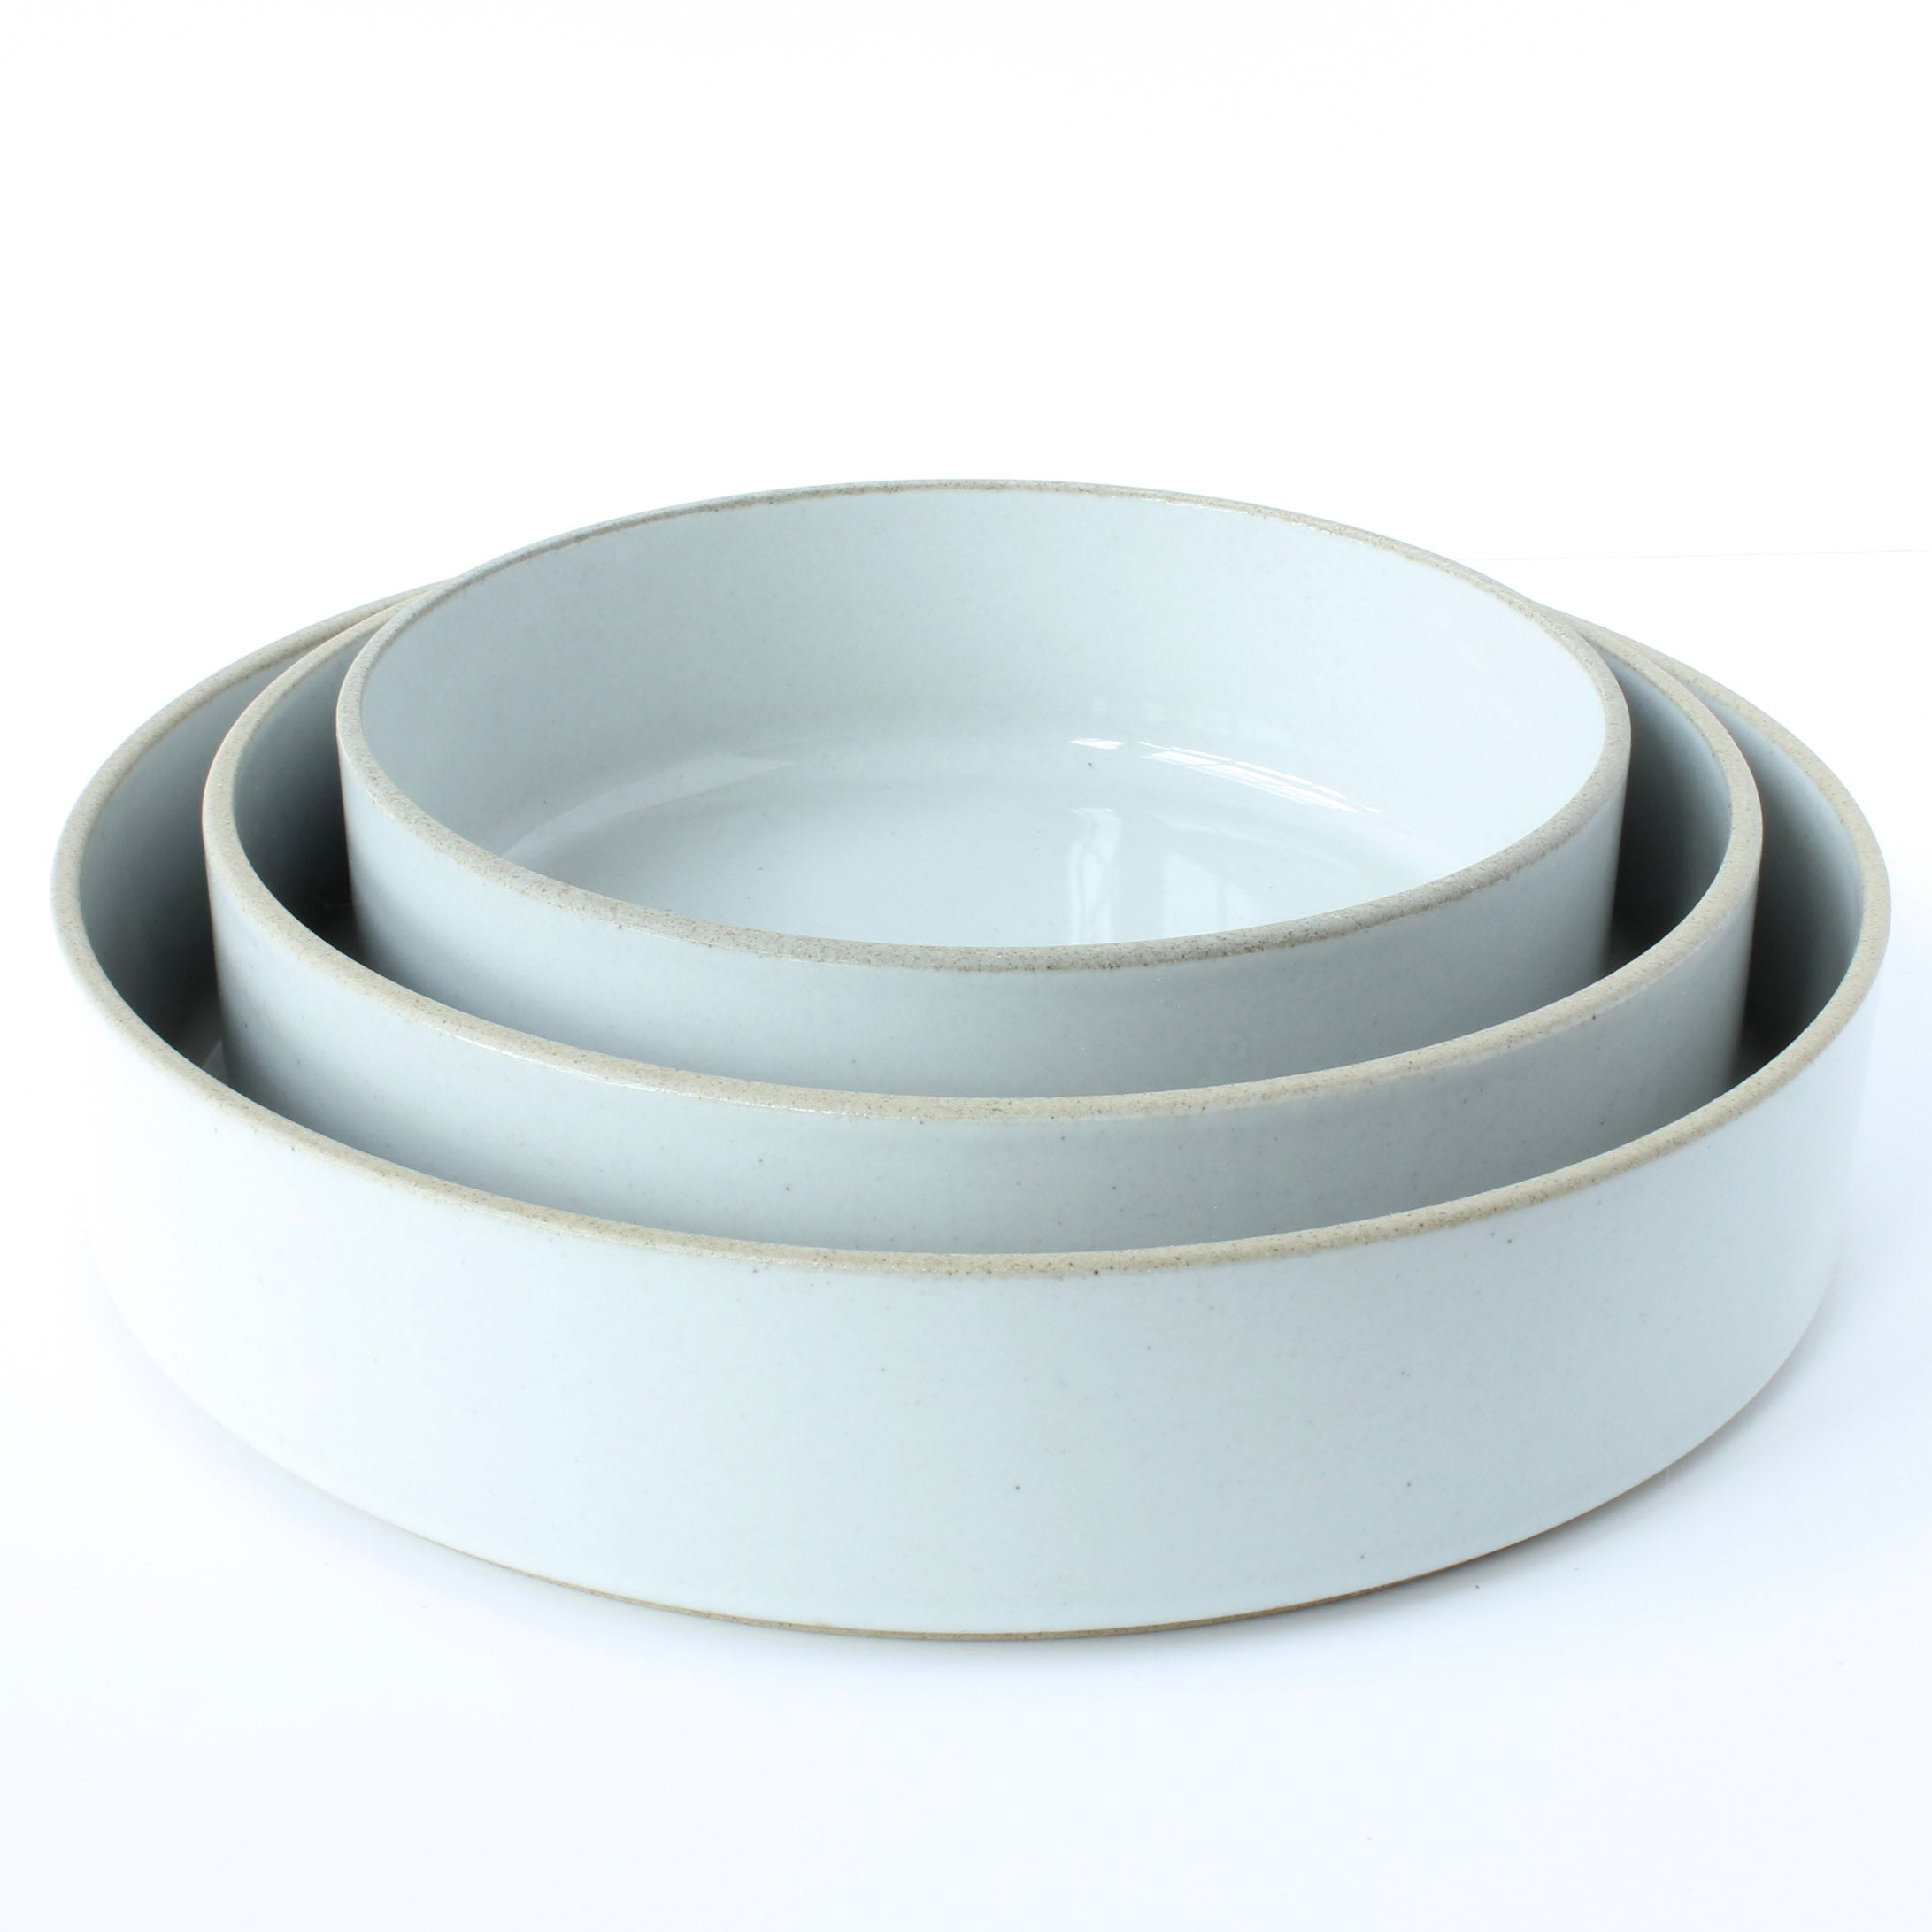 Gloss Grey Japanese Porcelain Bowls